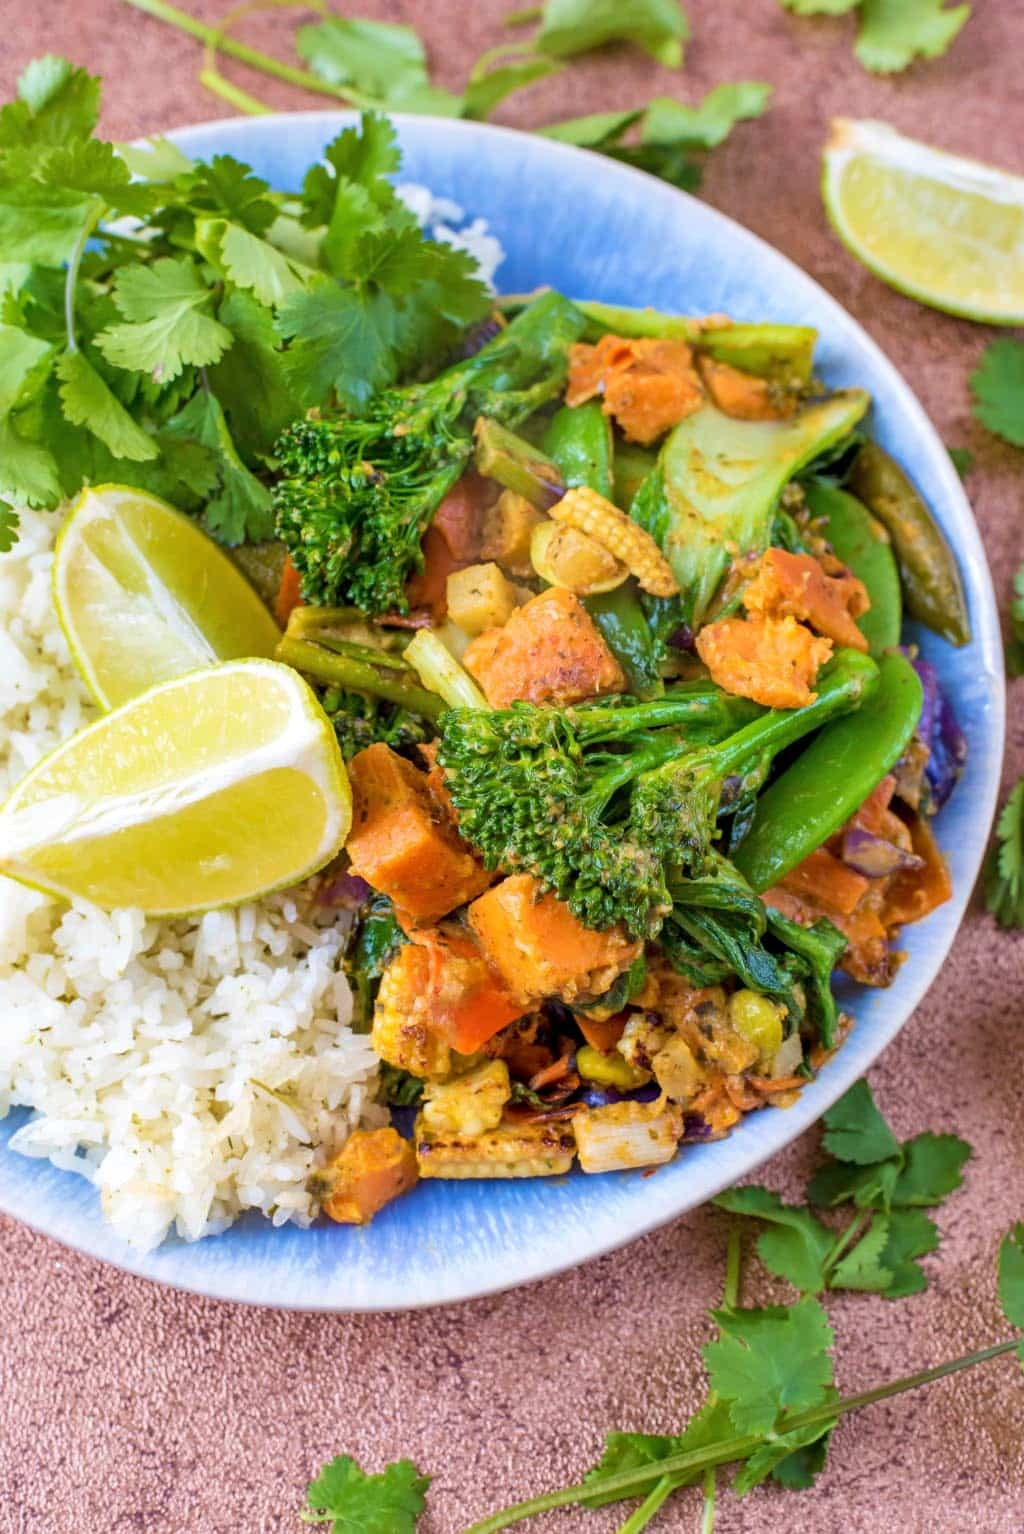 Broccoli, corn, sweet potato, pak choi and beans in a green curry sauce